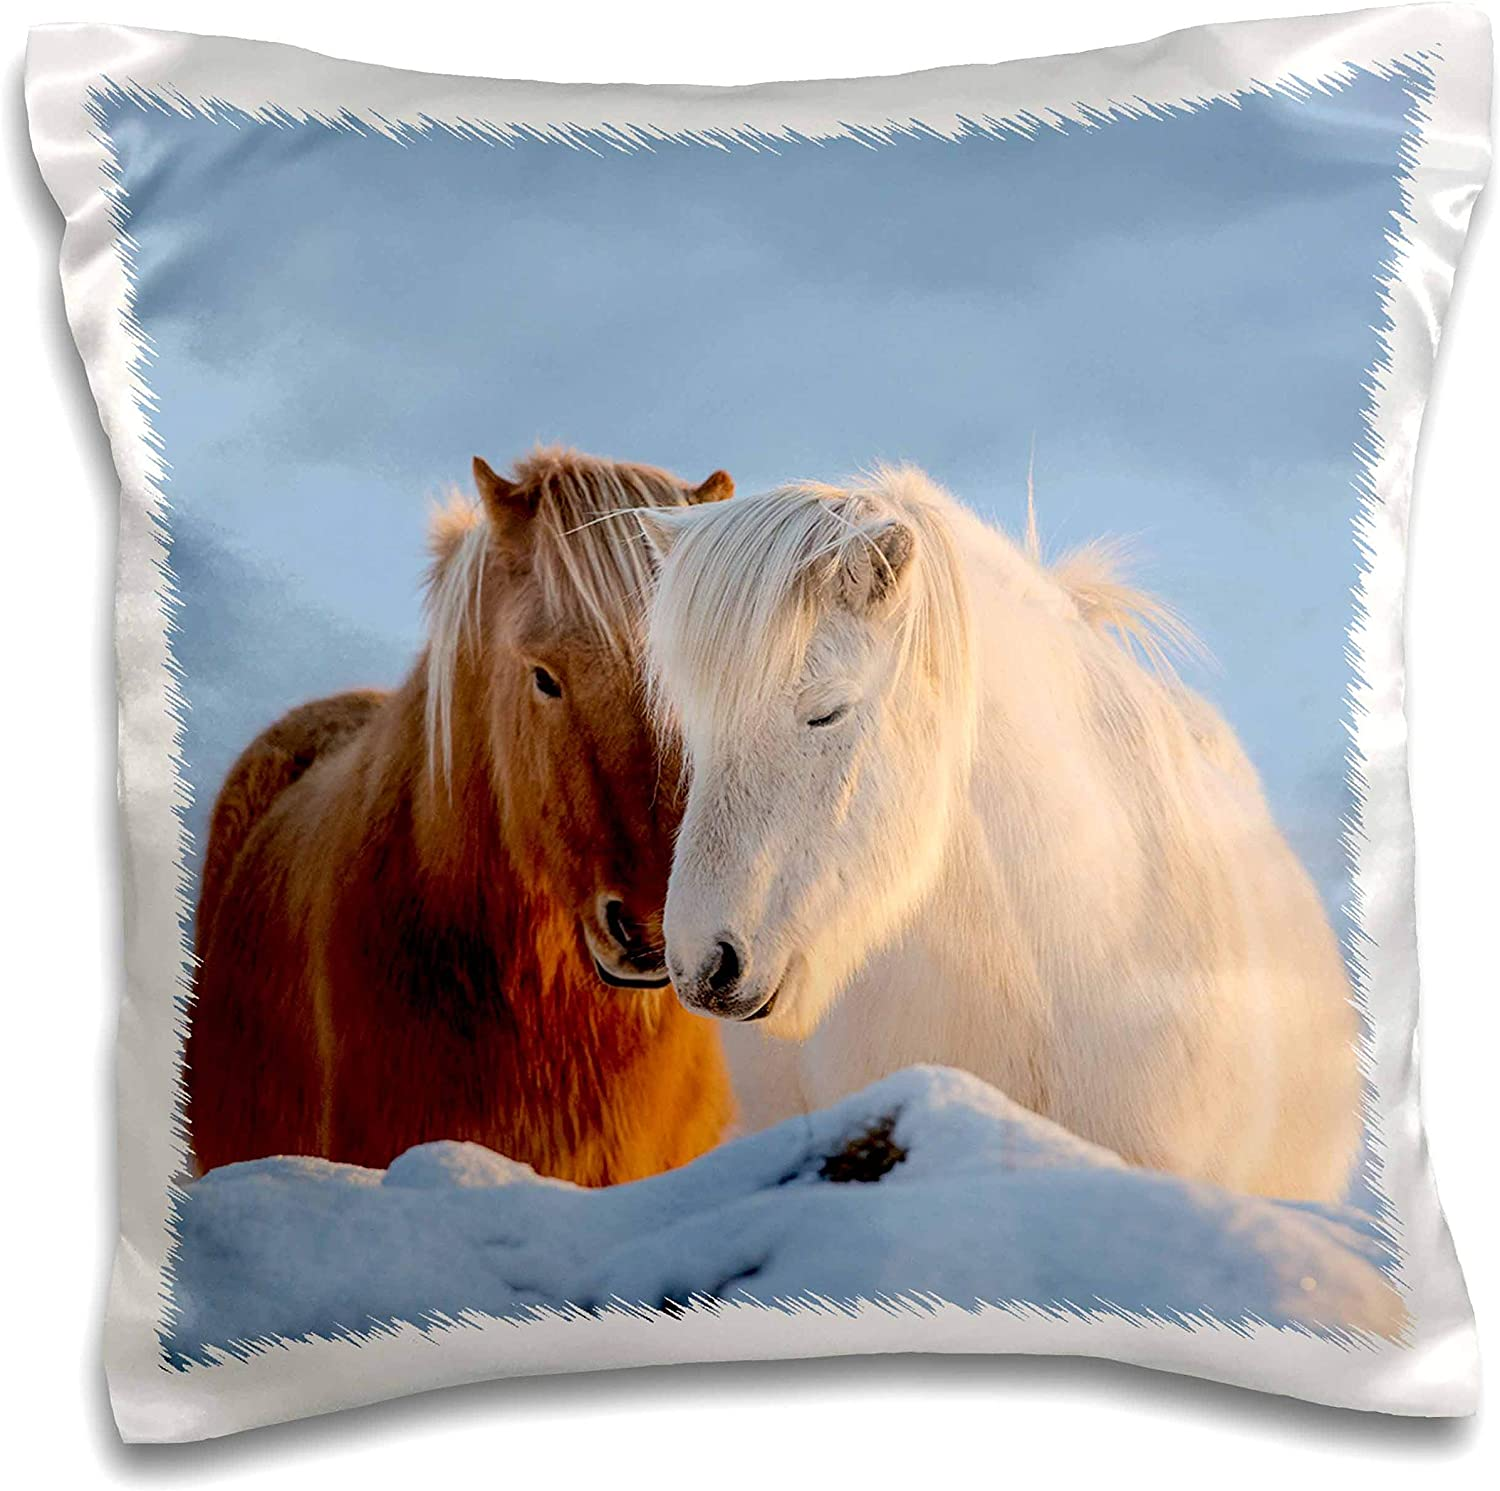 Amazon Com 3drose Danita Delimont Horses Icelandic Horses In South Iceland 16x16 Inch Pillow Case Pc 313639 1 Kitchen Dining